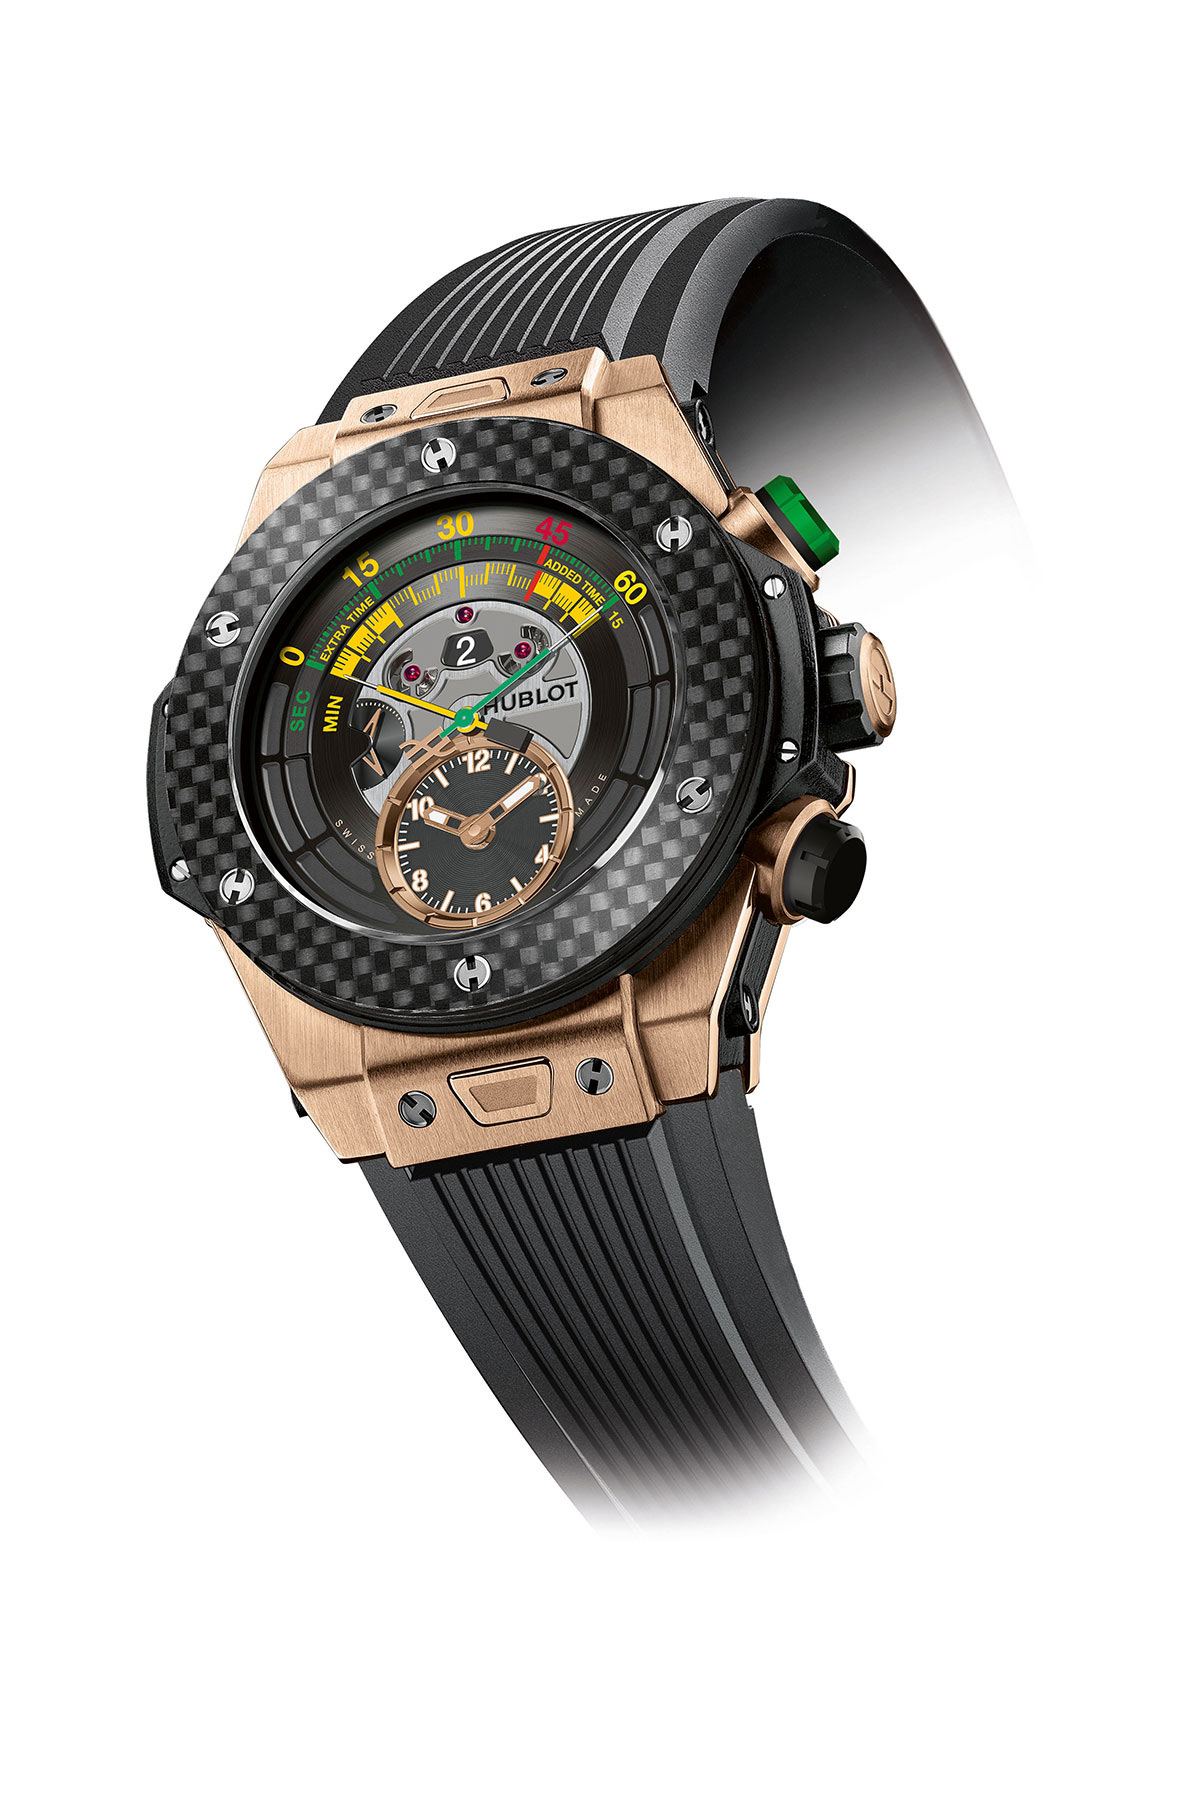 Hublot Big Bang Unico Bi-Retrograde Chrono - Official Watch of the 2014 FIFA World Cup